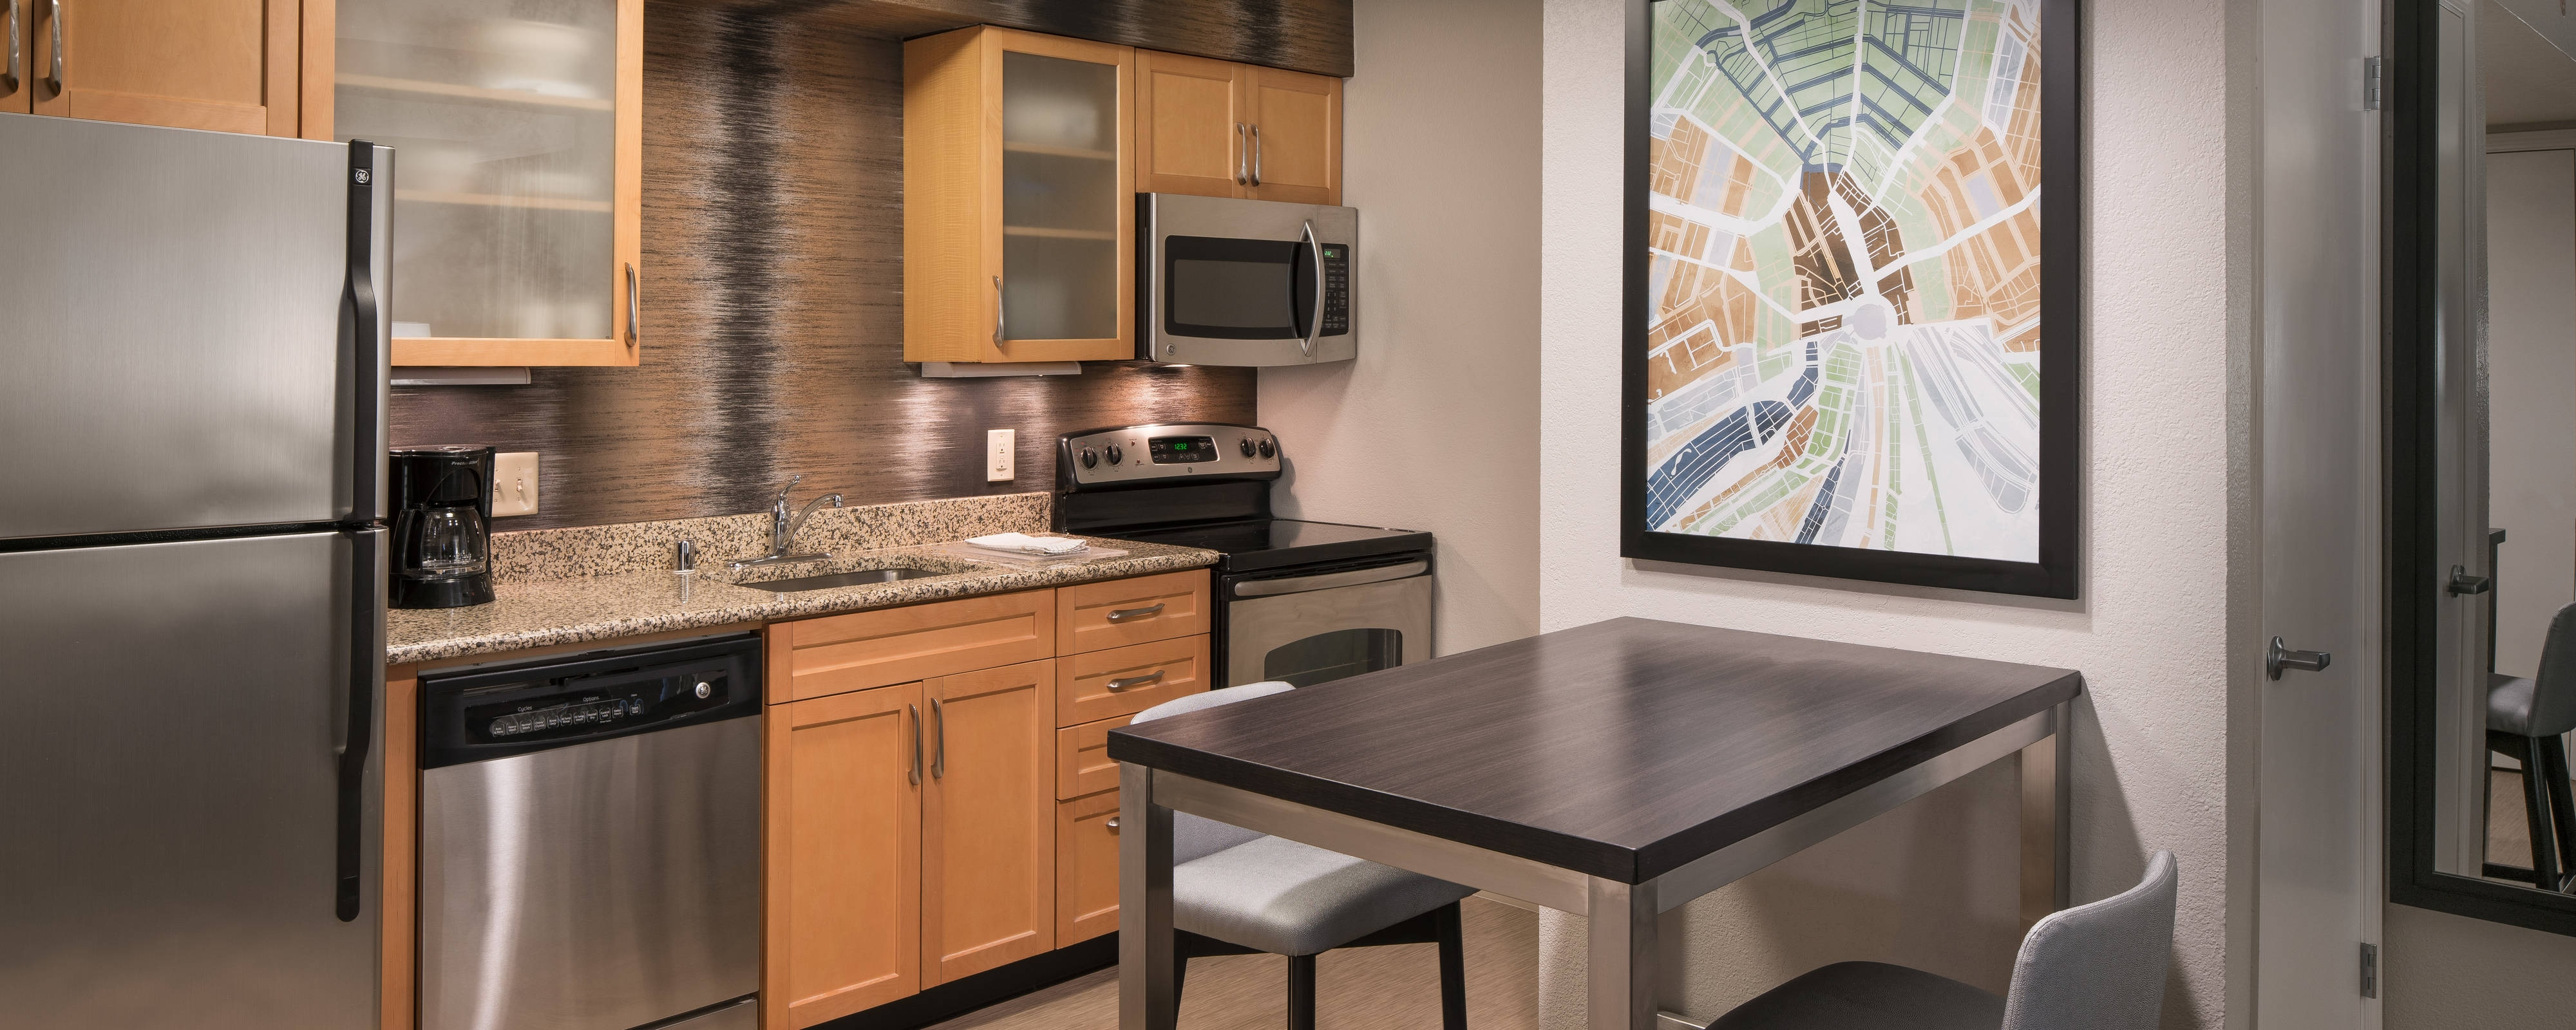 las vegas hotels with kitchen architecture design rh justshop24 store hotels with kitchenettes in las vegas